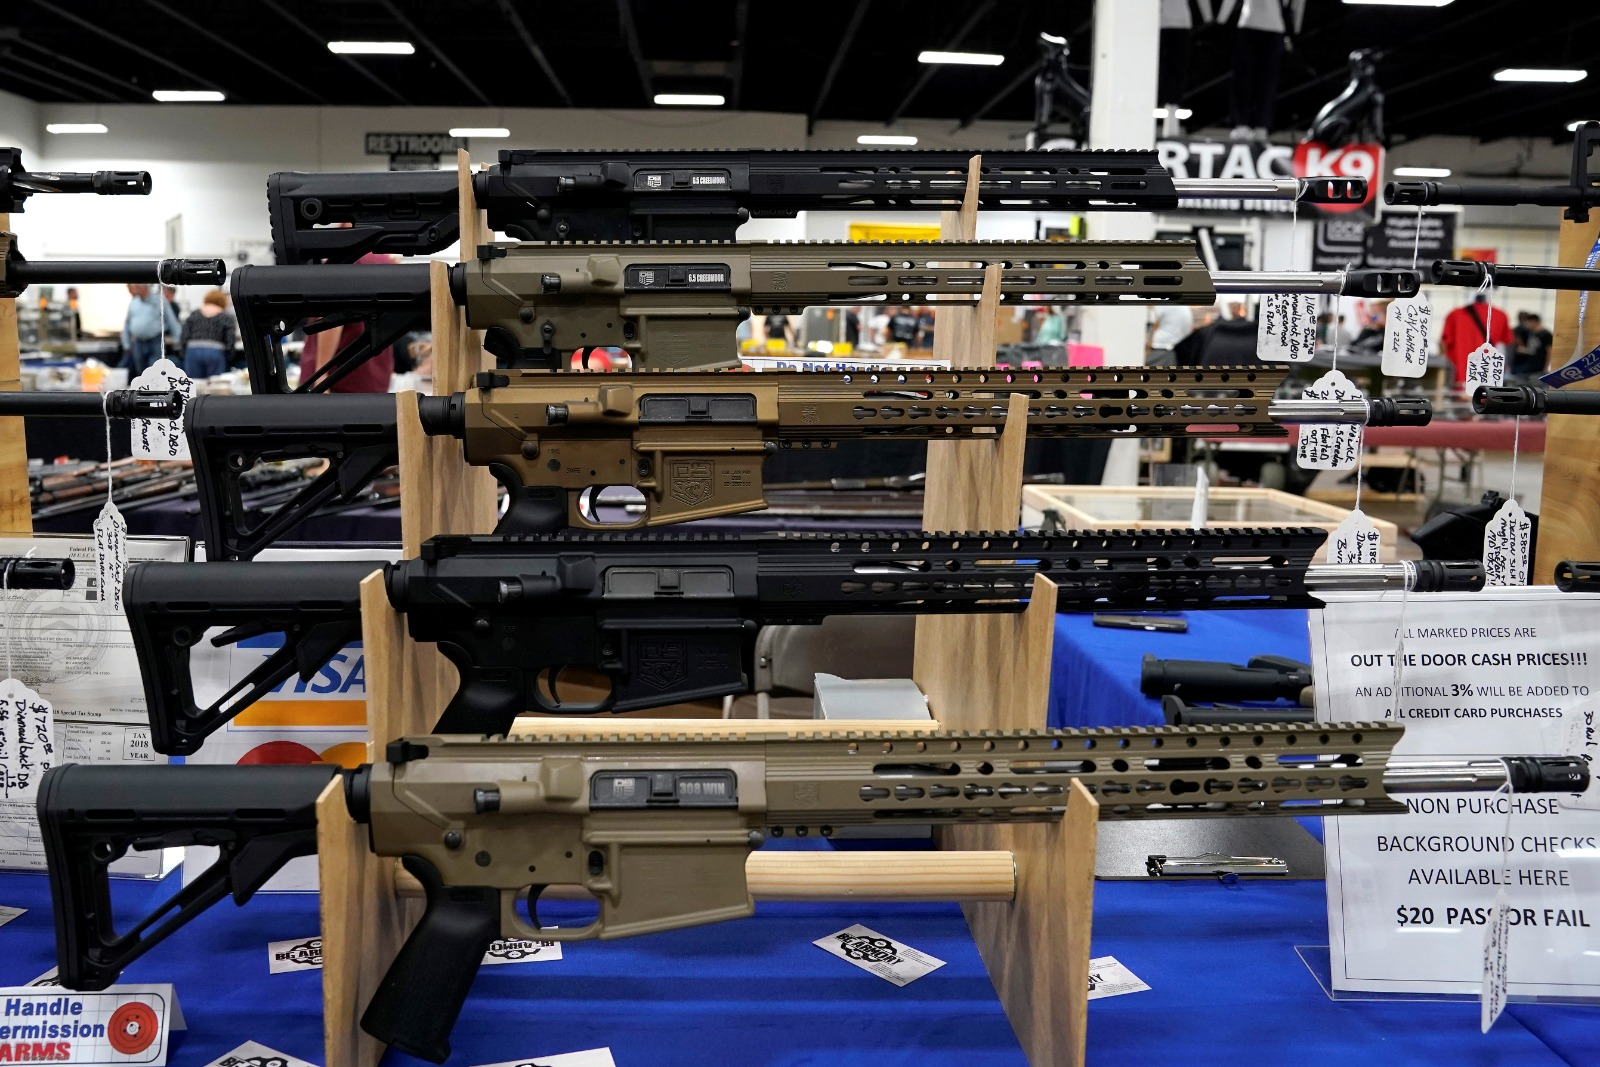 DIY: You Can Now Build Your Very Own AR-15 Rifle